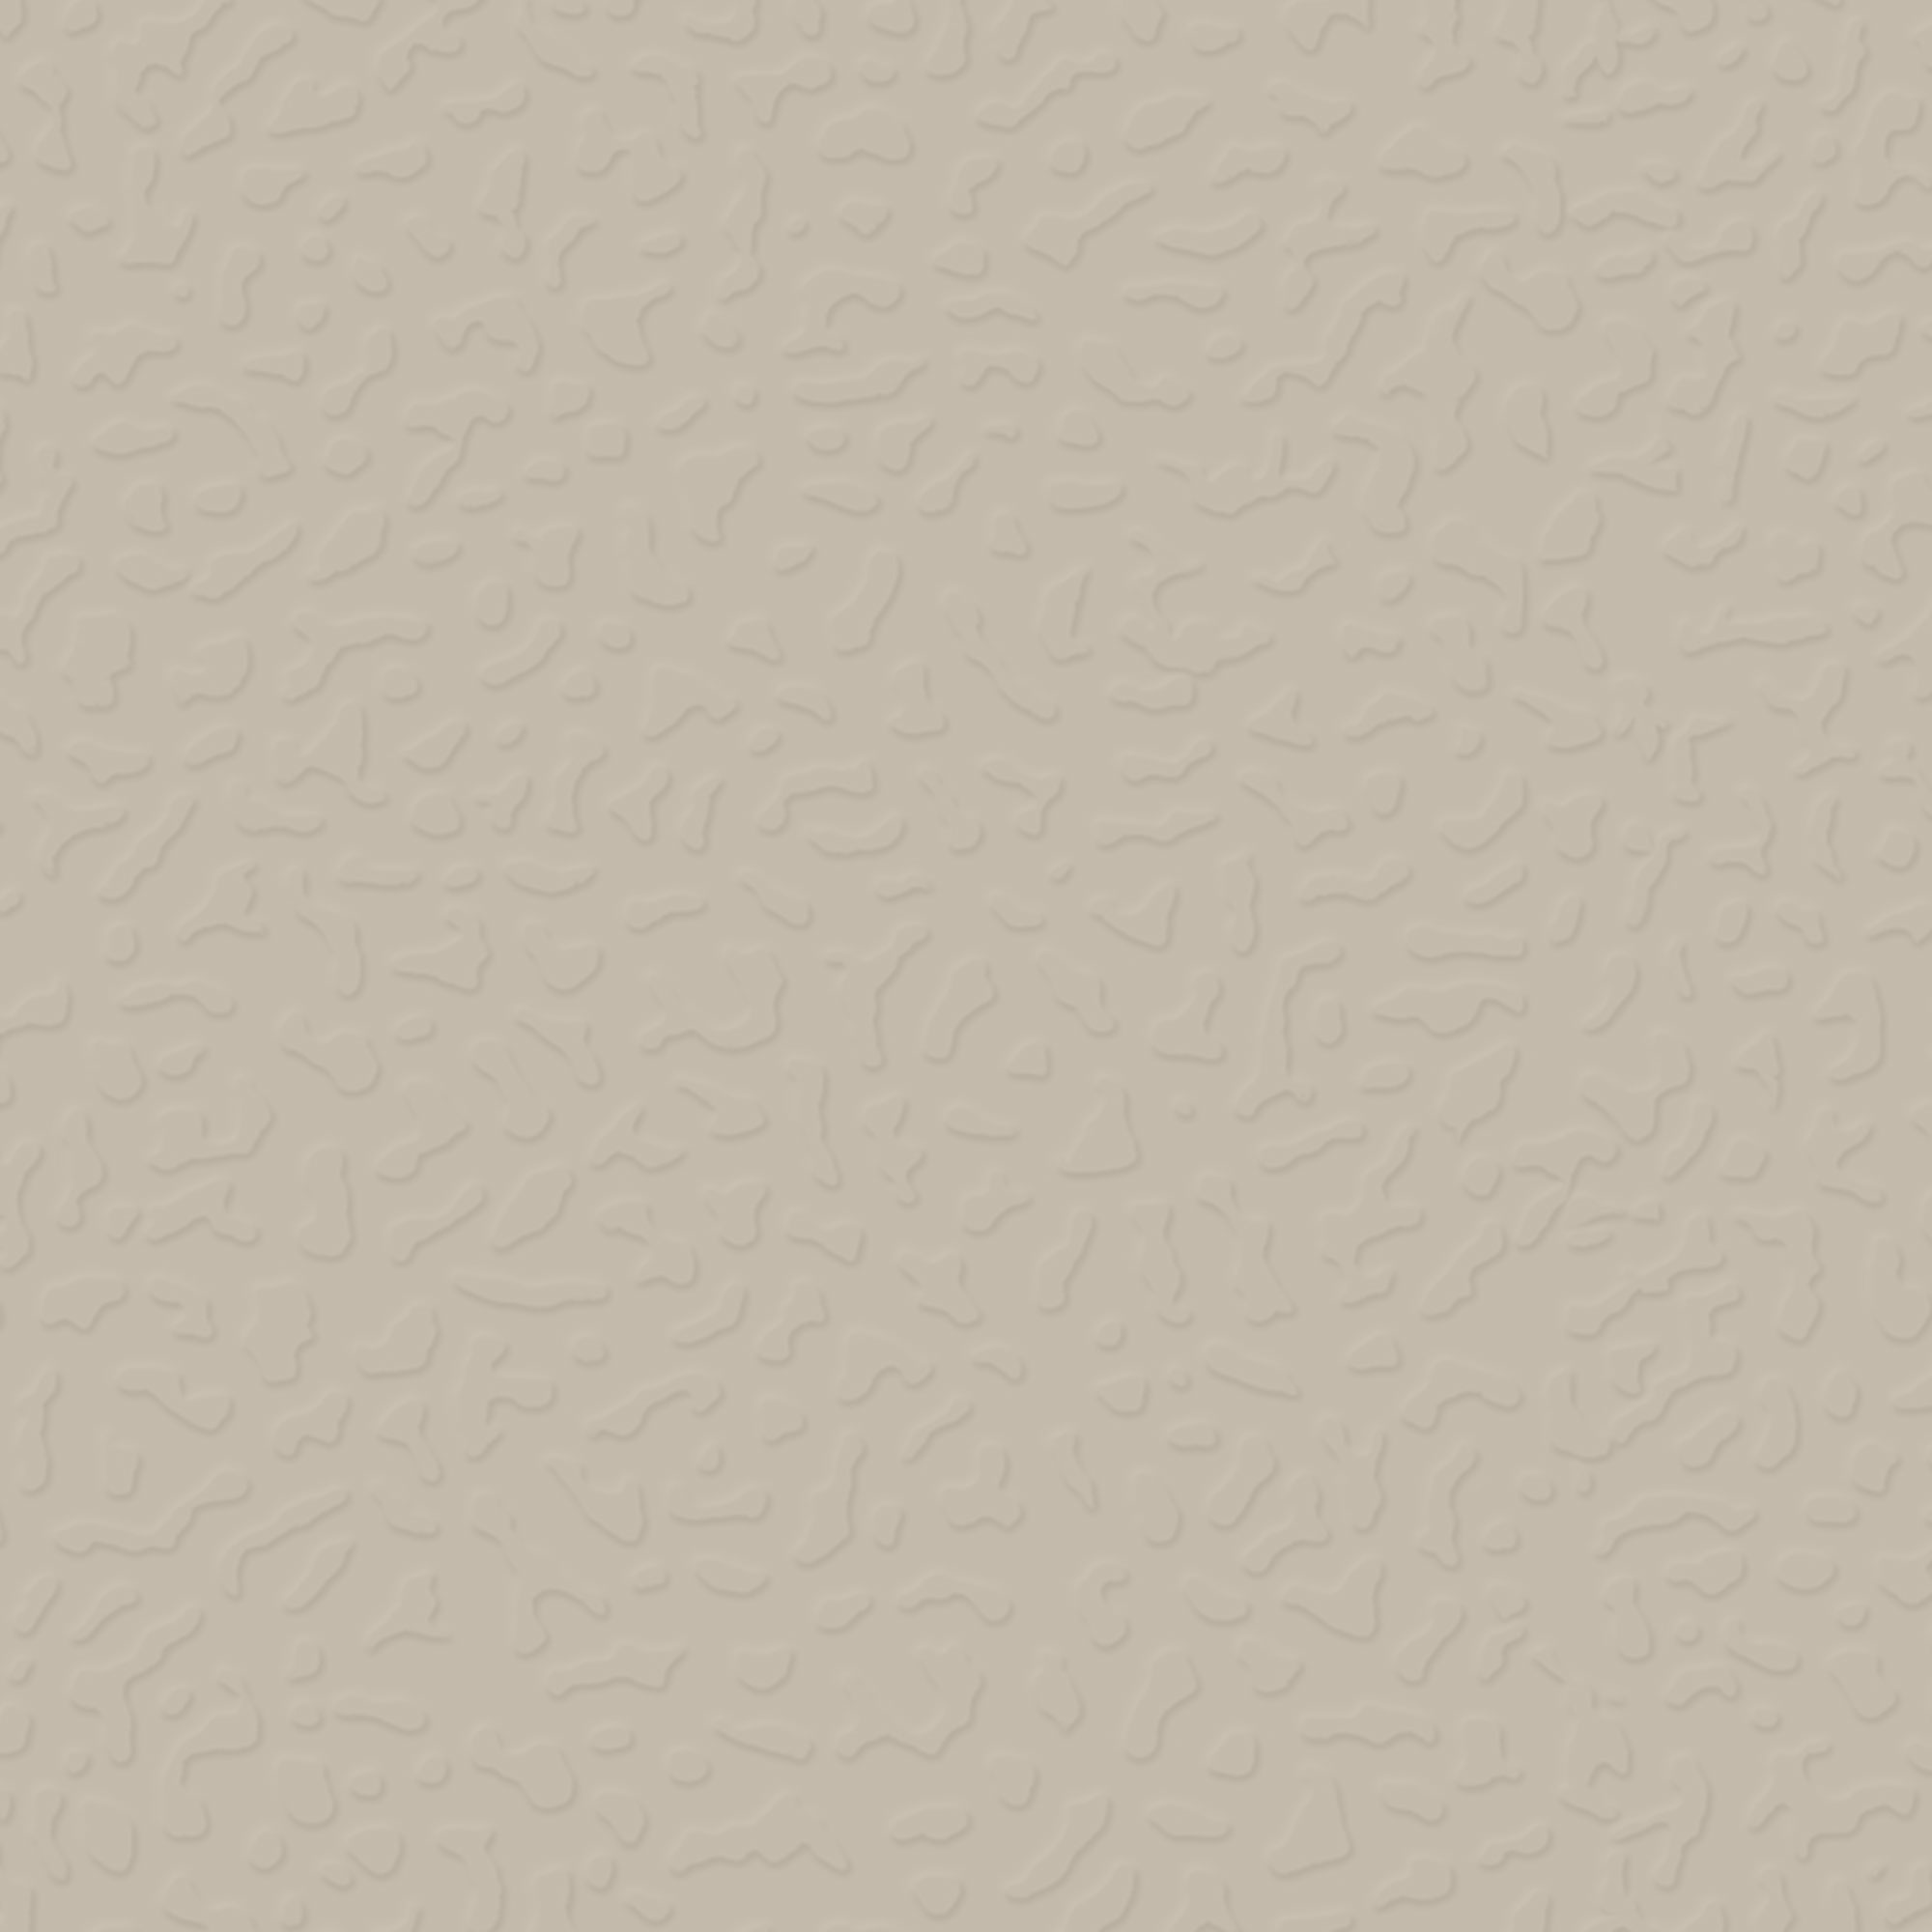 Roppe Rubber Tile 900 - Textured Design (993) Natural LB996122